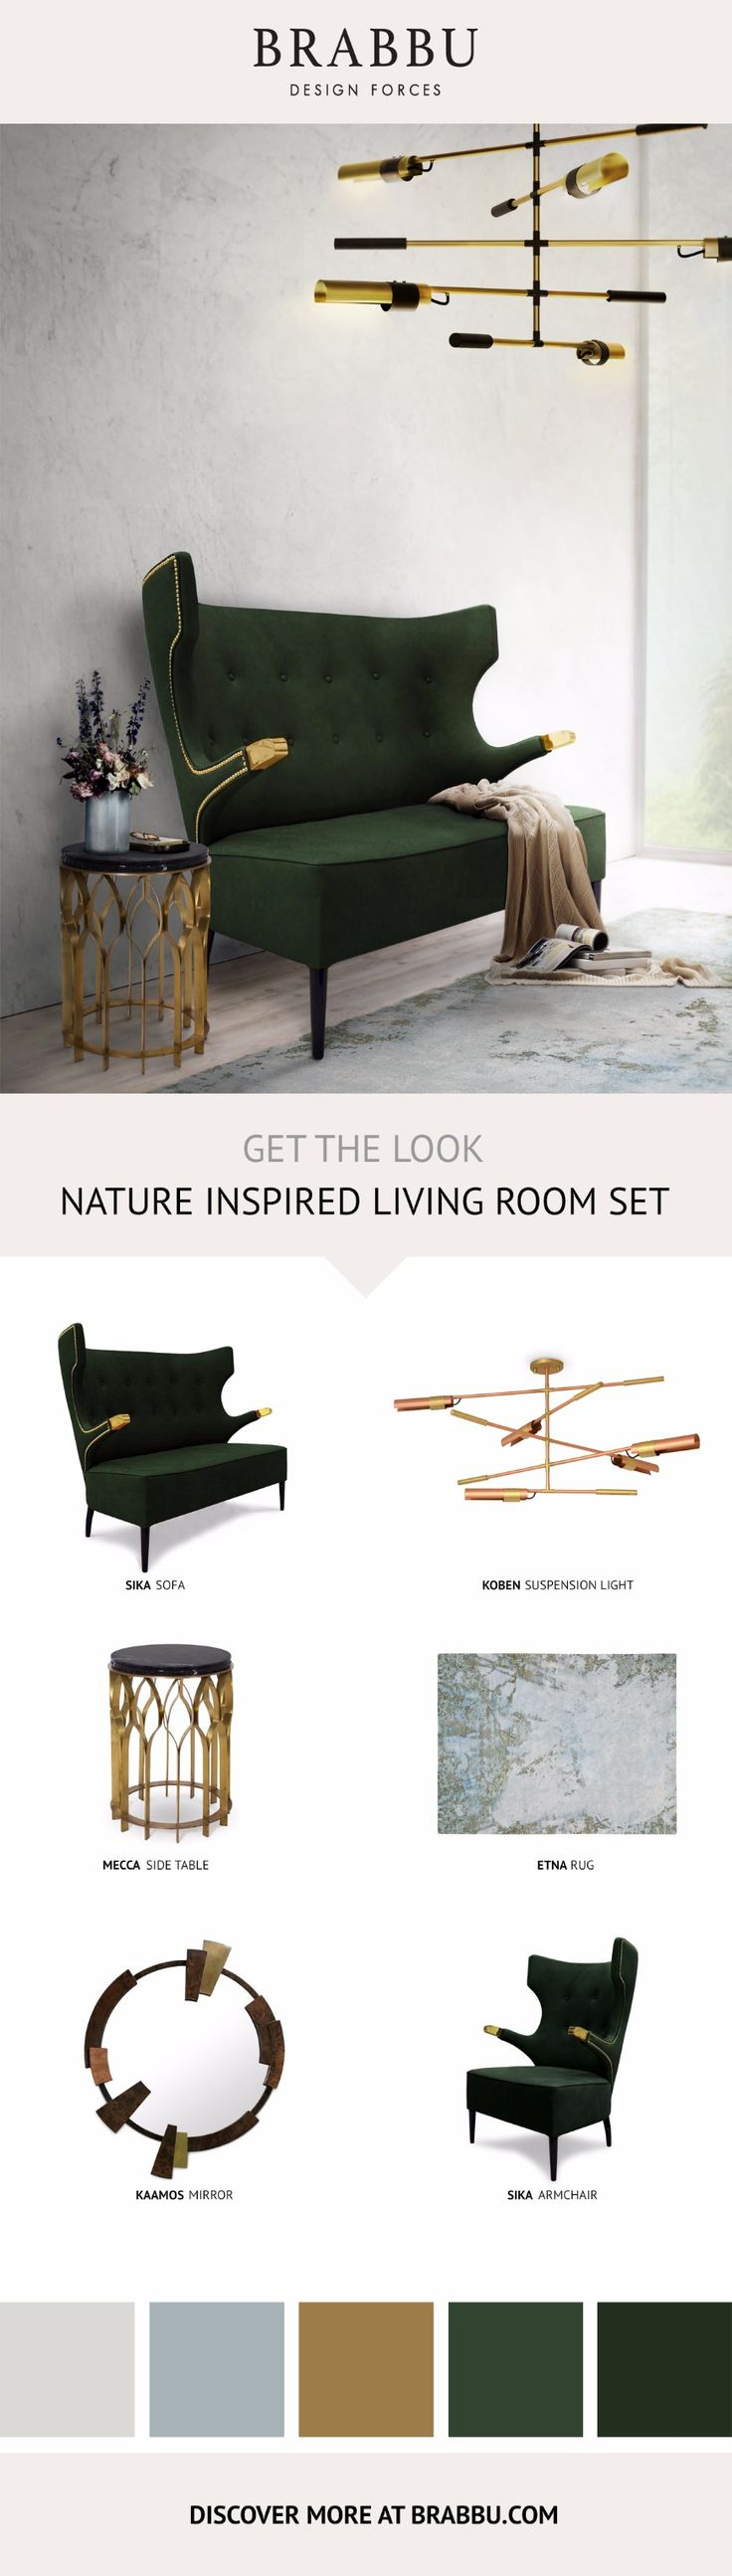 Get The Look: How To Design A Stylish Living Room Set | Modern Sofas #modernsofas #interiordesign #livingroom Read more: http://modernsofas.eu/2017/04/26/look-design-stylish-living-room-set/